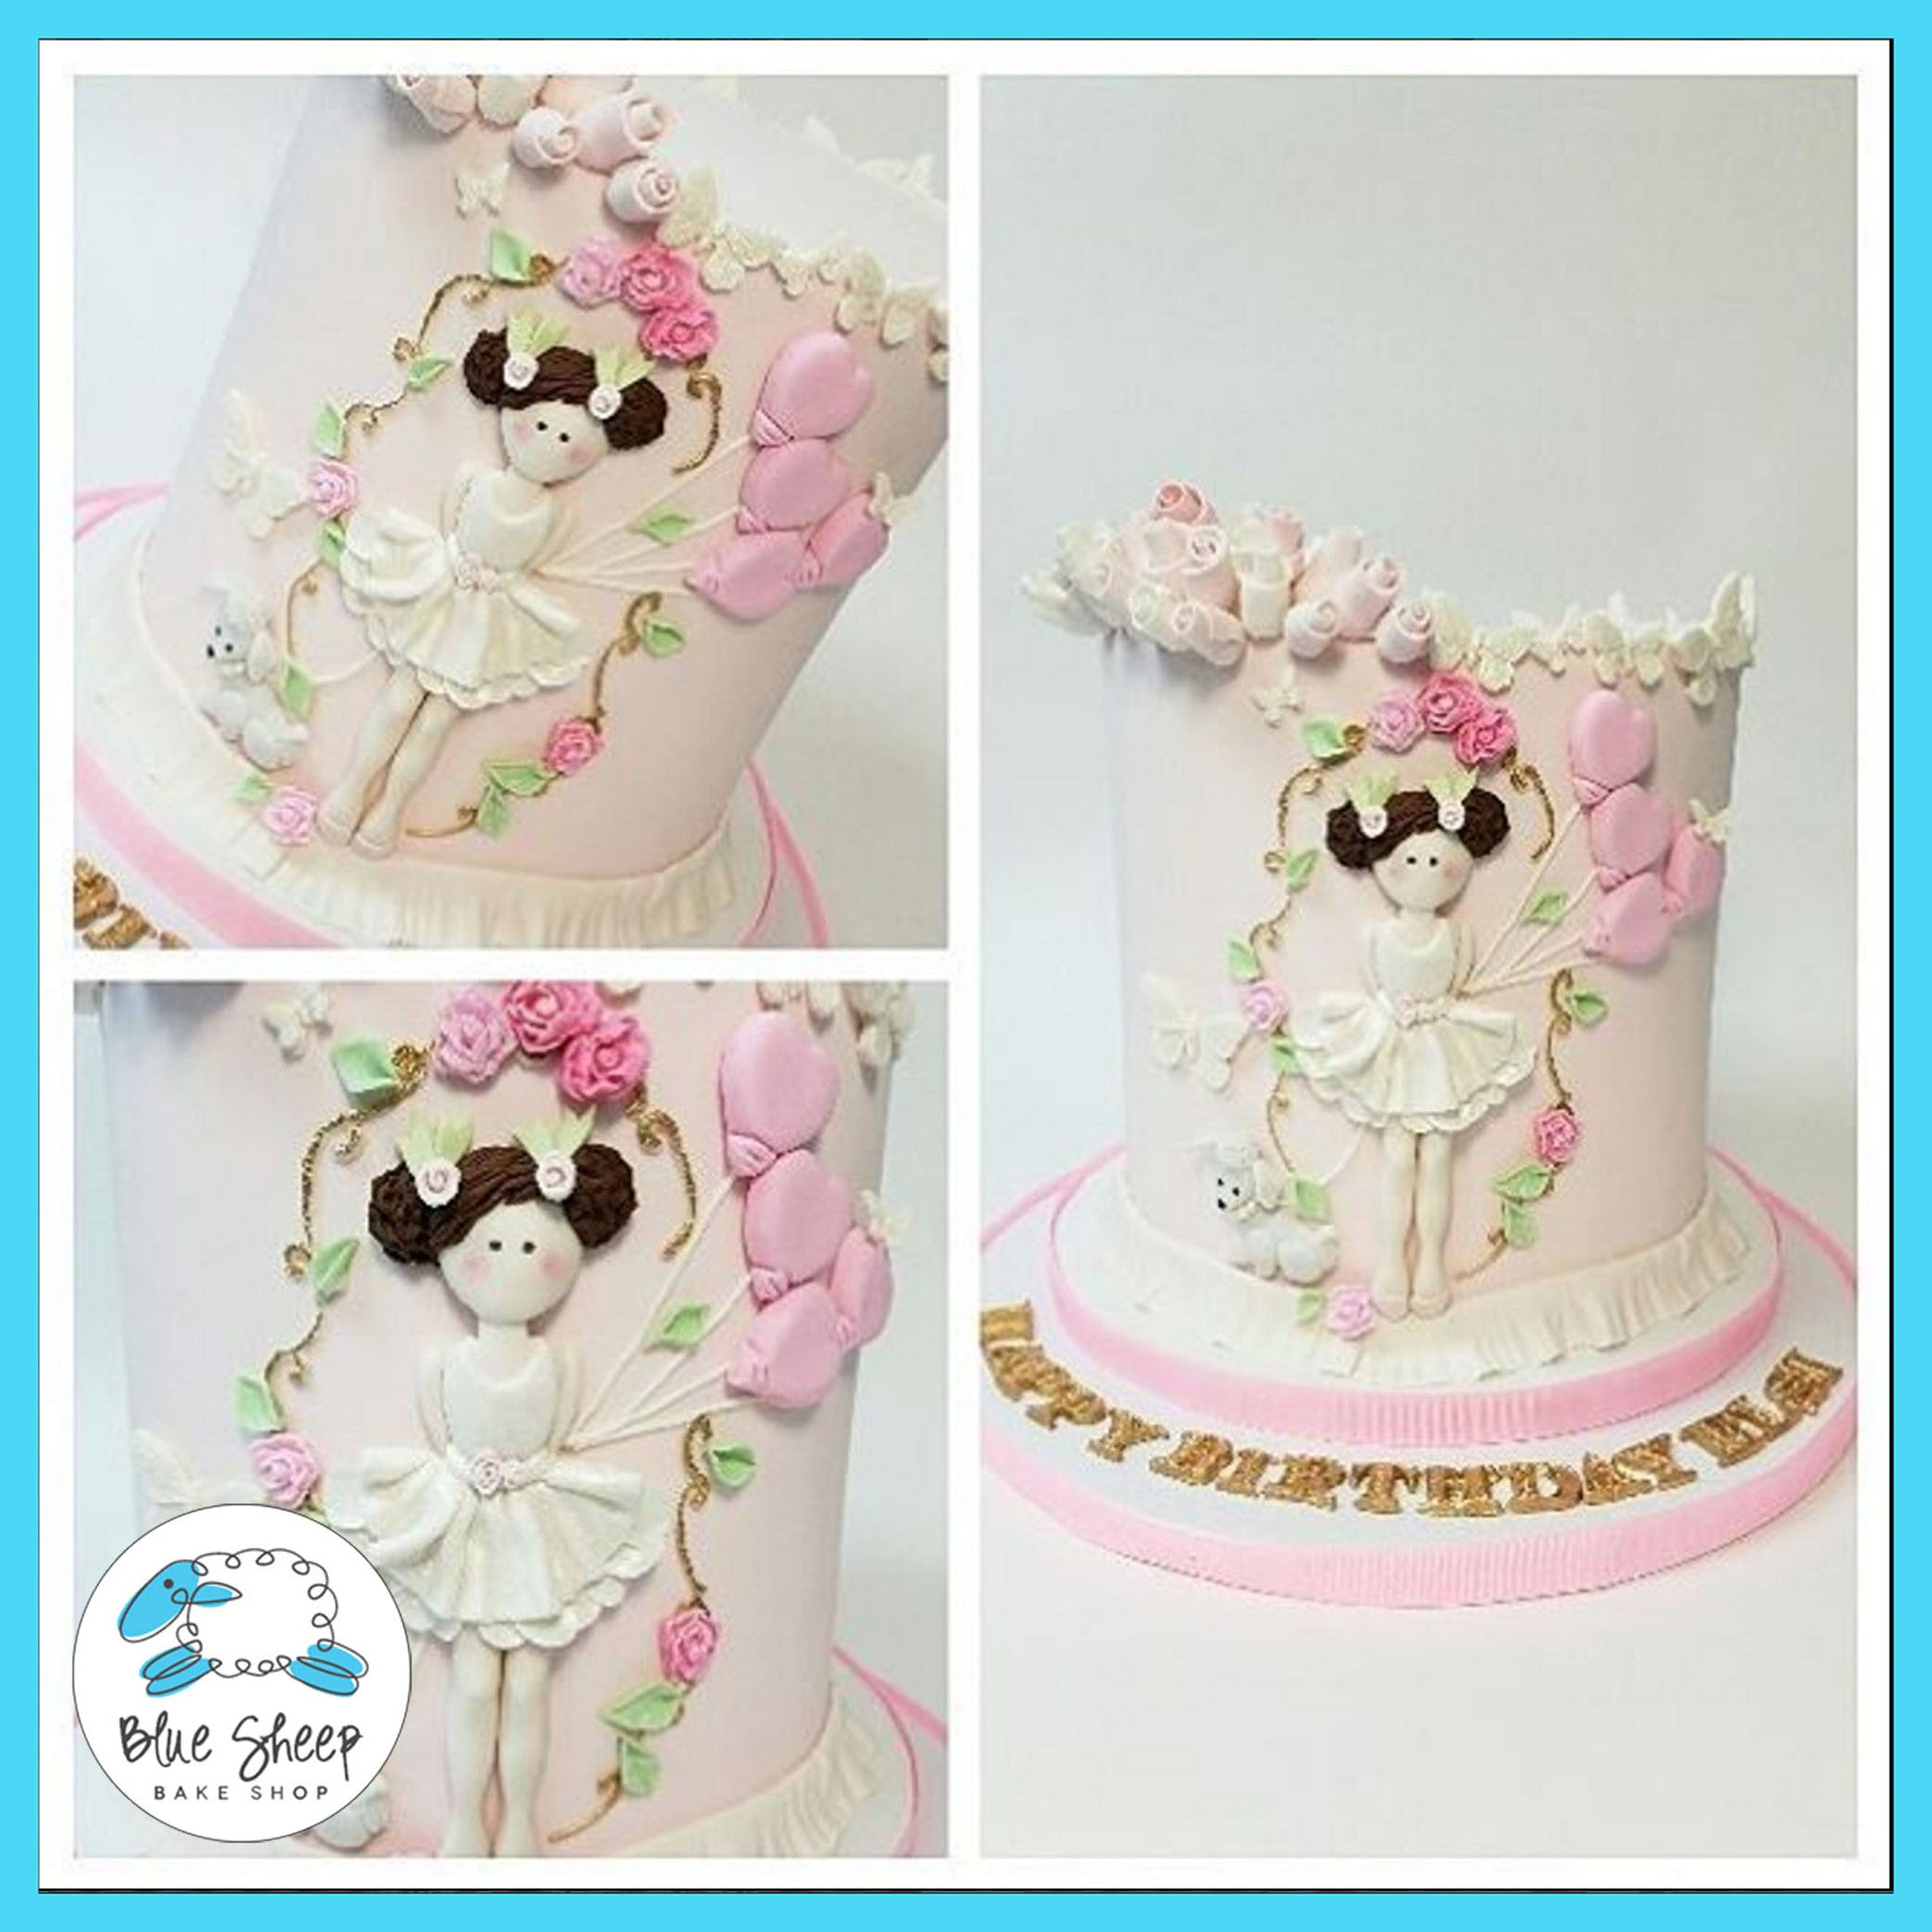 Ballerina Birthday 1st Birthday Cake II Blue Sheep Bake Shop